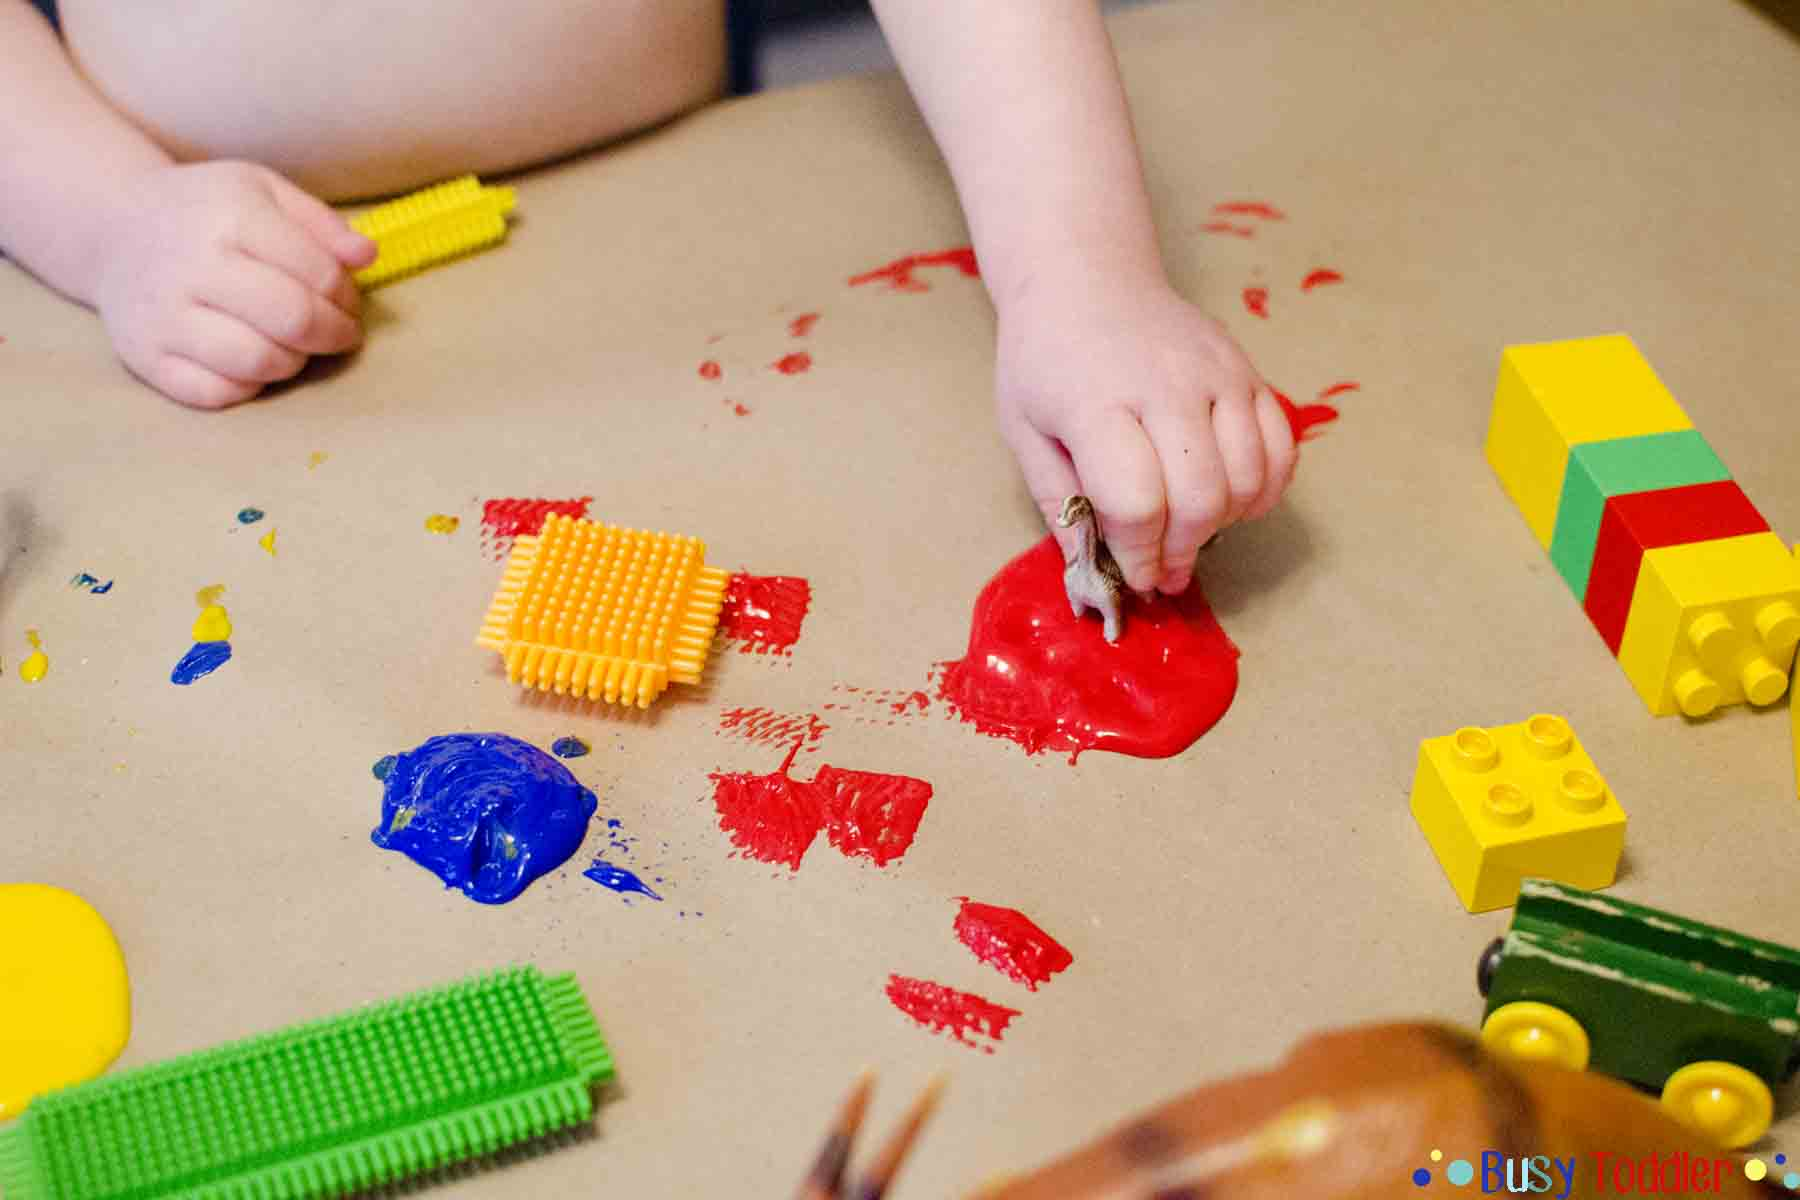 TOY PAINT: a silly fun toddler activity with paint